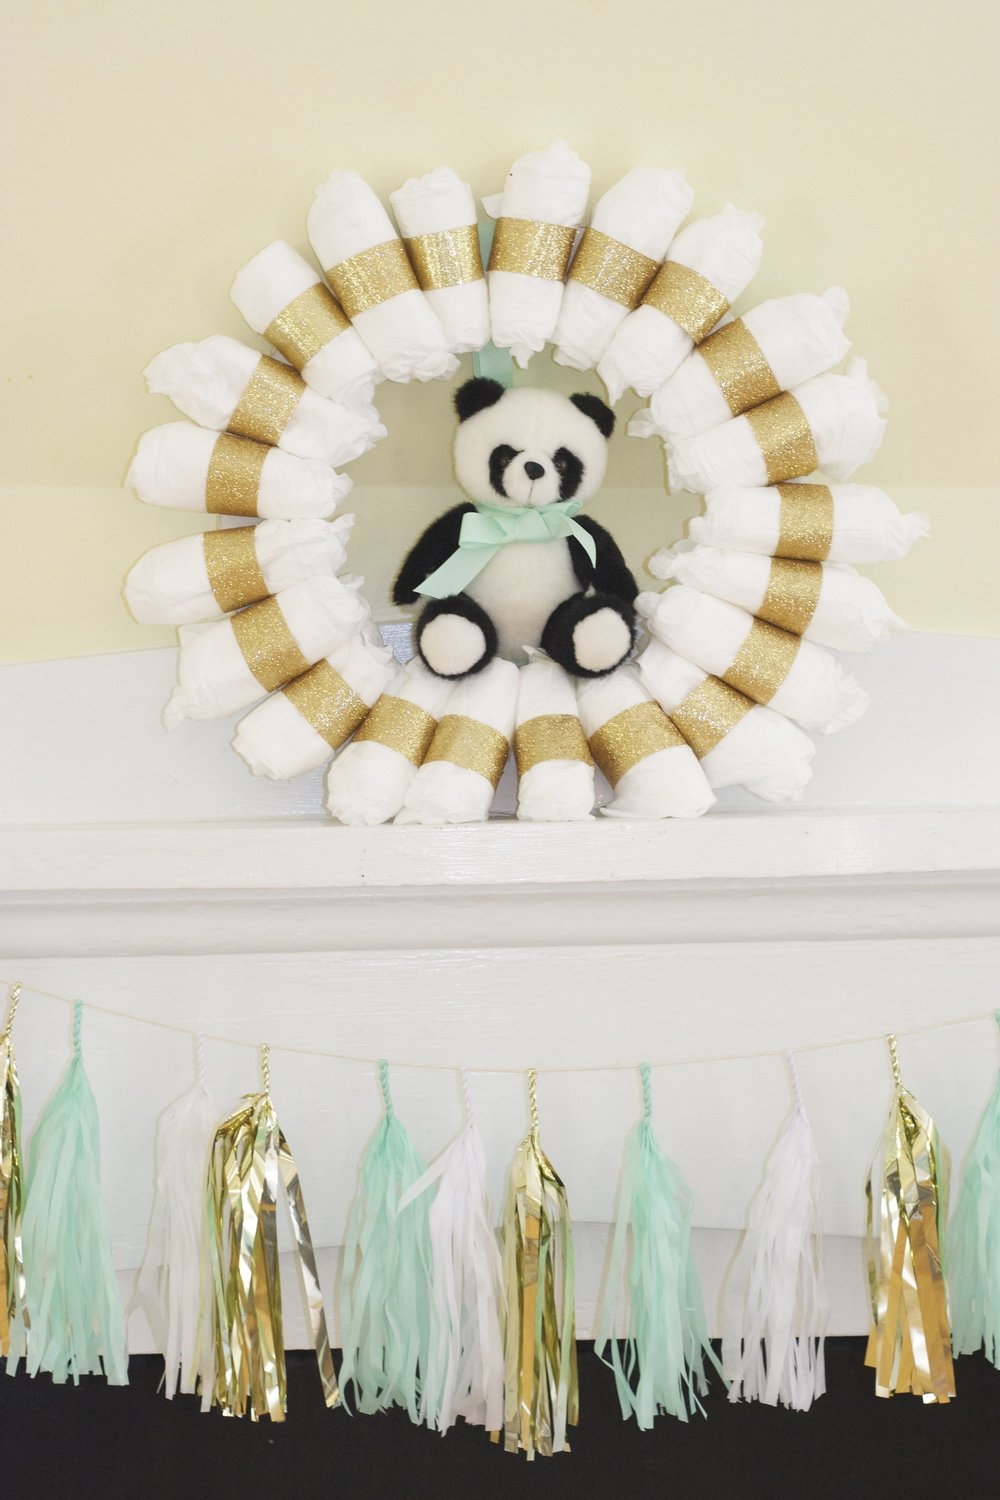 I made the wreath from diapers and glittery ribbon.